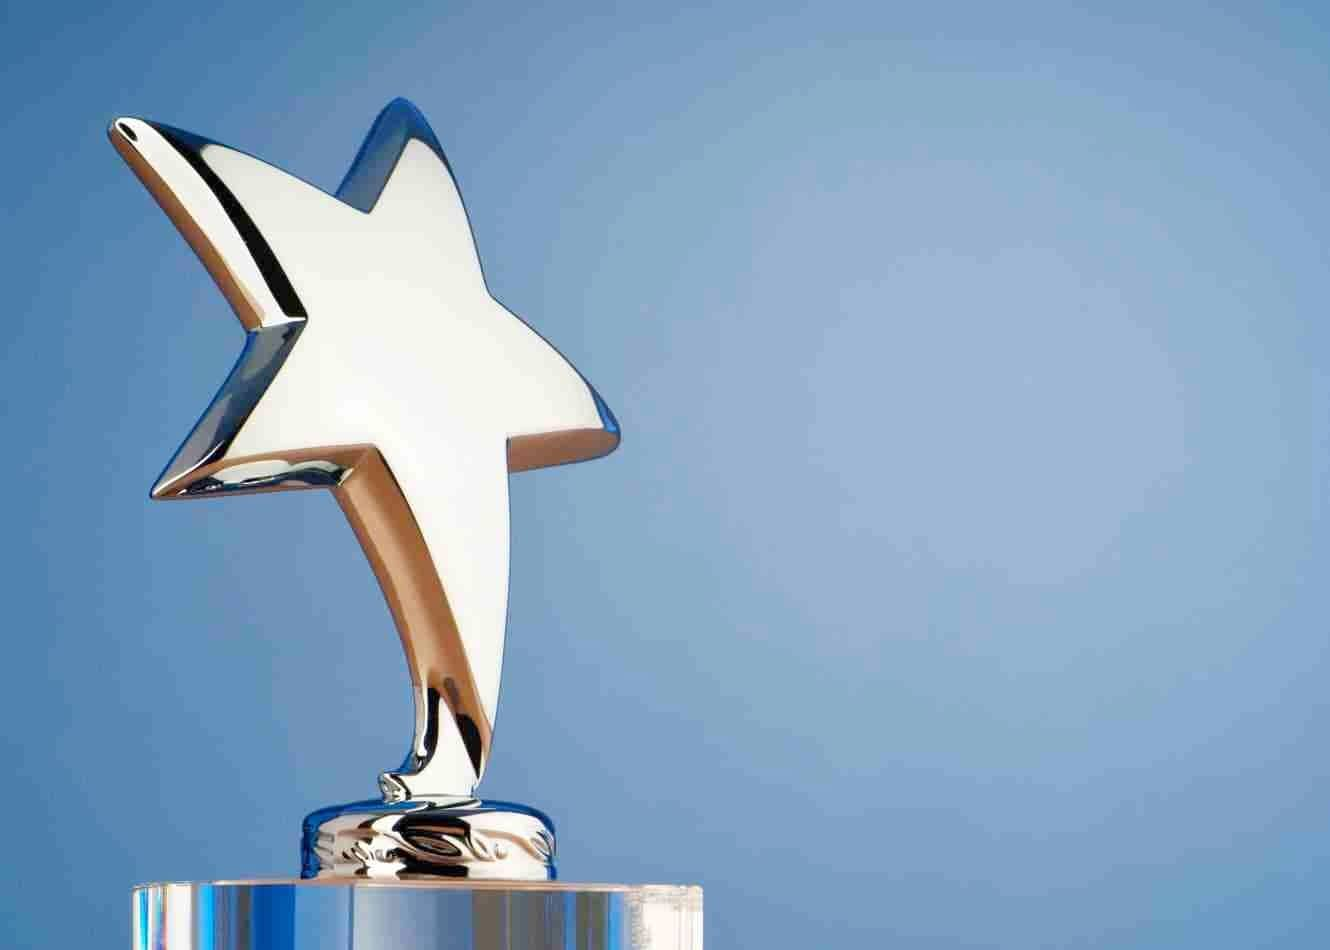 TCS recognized for leading CSR practices